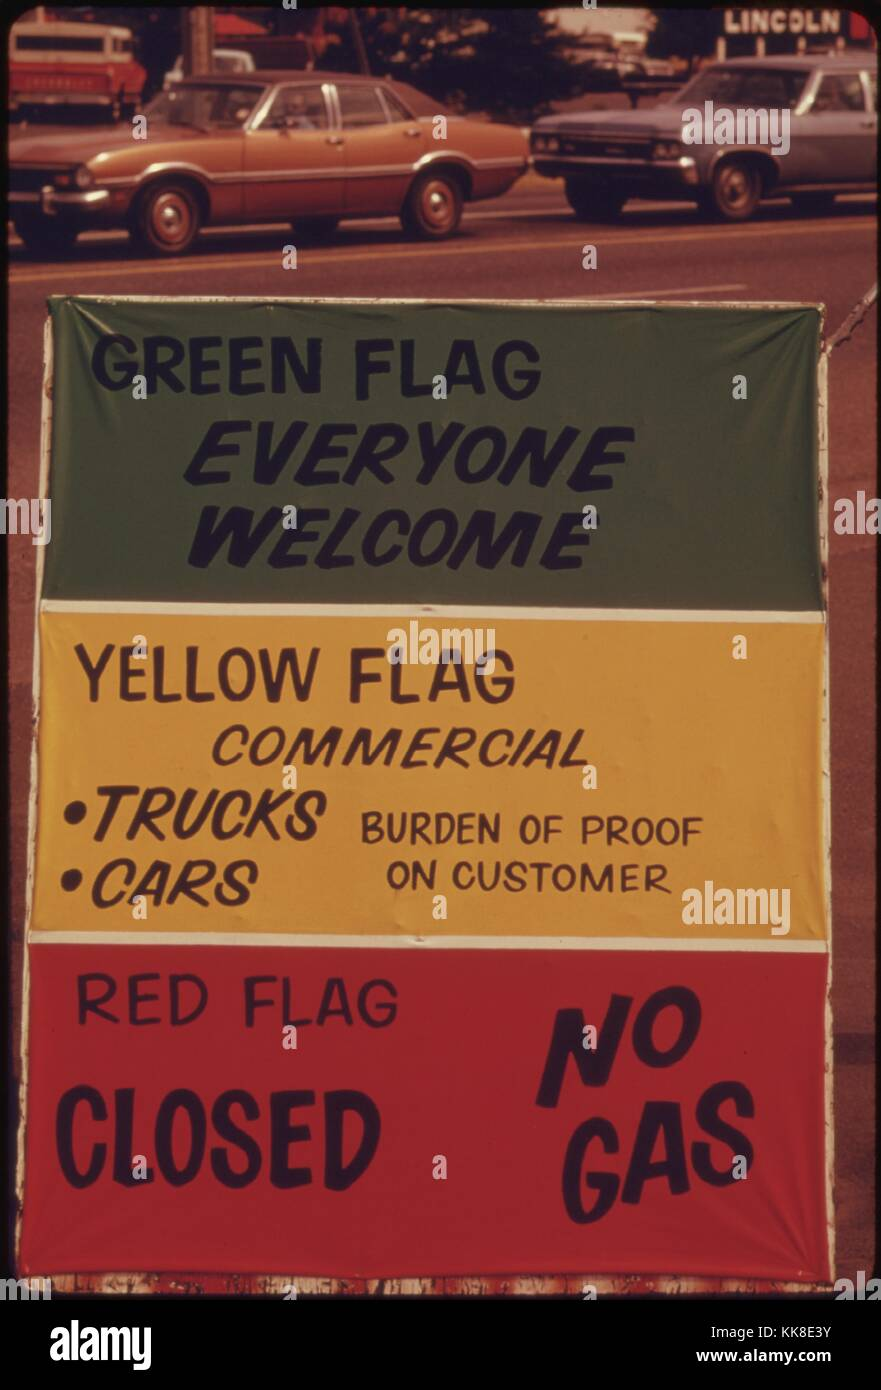 Gasoline Dealers in Oregon Displayed Signs Explaining the Flag Policy During the Fuel Crisis in the Winter of 1973 - Stock Image